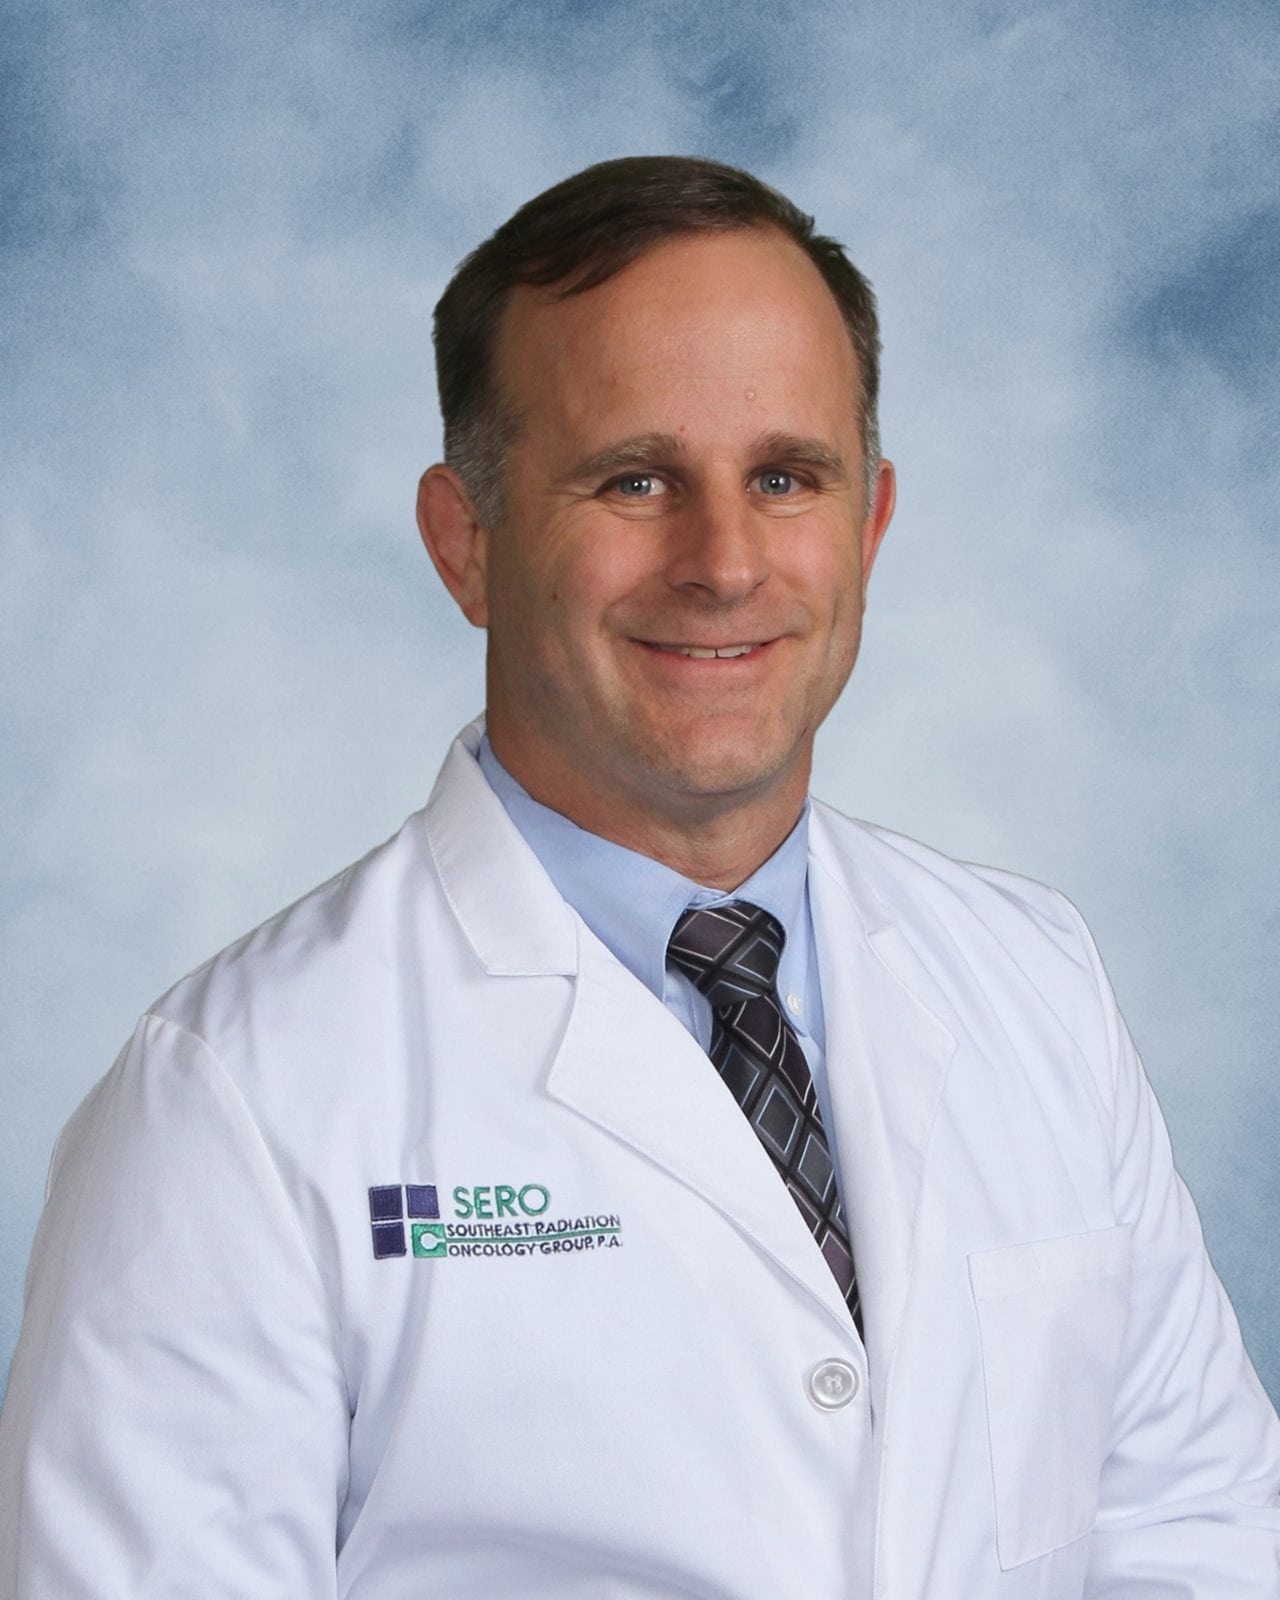 Kevin S Roof Md Southeast Radiation Oncology Group